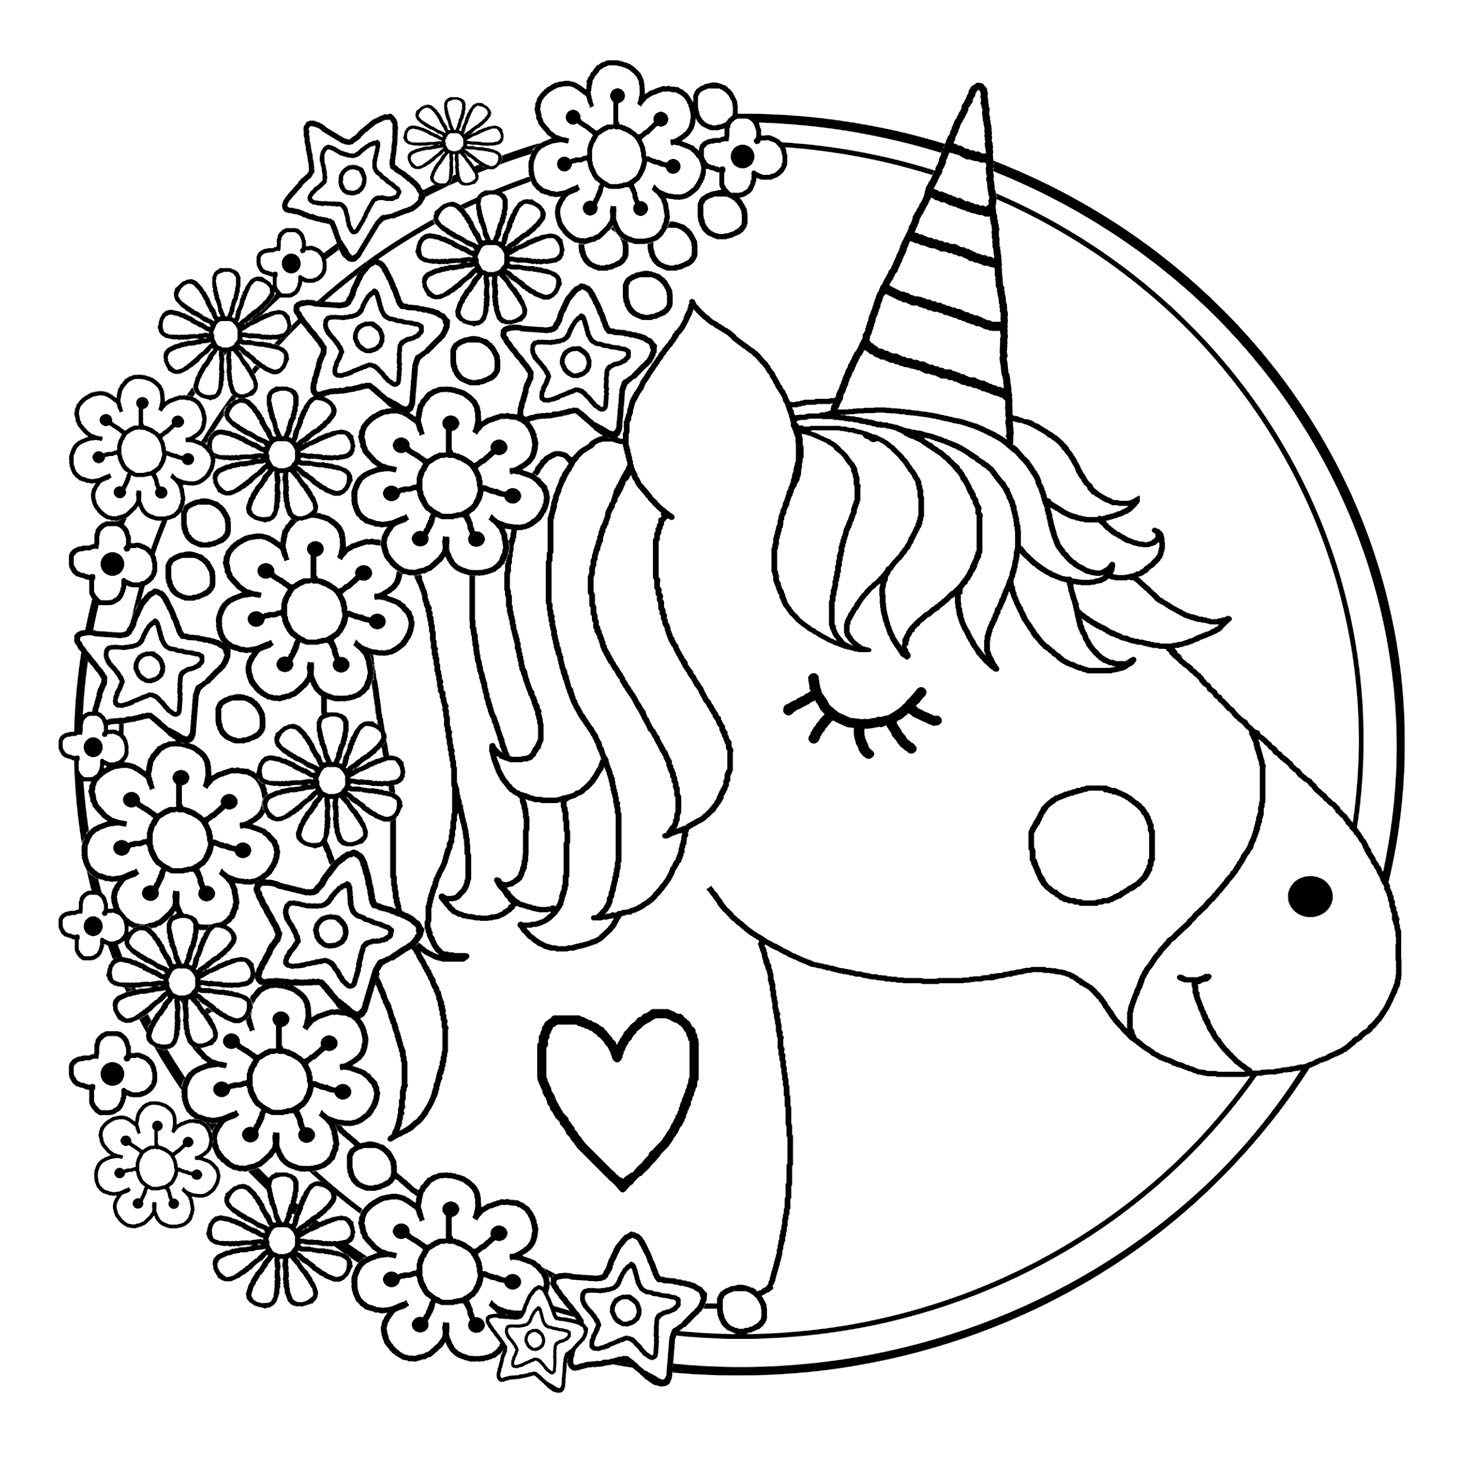 unicorn coloring sheets printable unicorn zentangle simple unicorns adult coloring pages coloring printable unicorn sheets